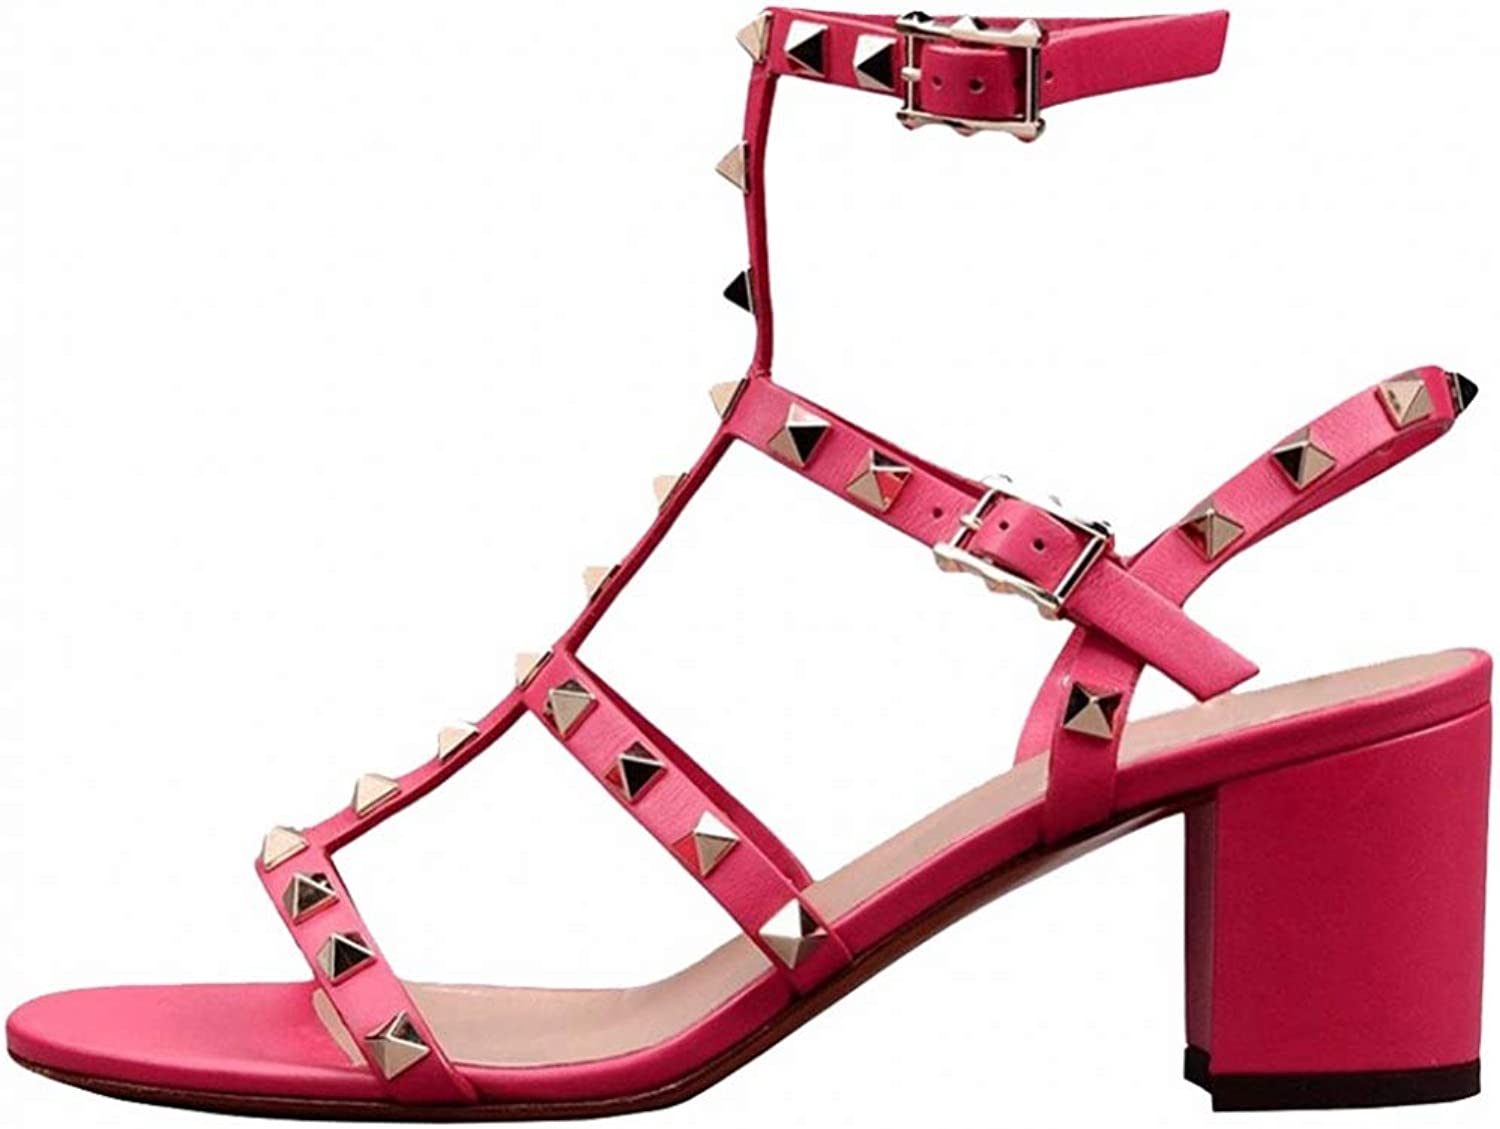 T-JULY Fashion Ladies Rivets Studded Sandals Gladiator Buckle Strap Open Toe Woman shoes Block Med Square Heels